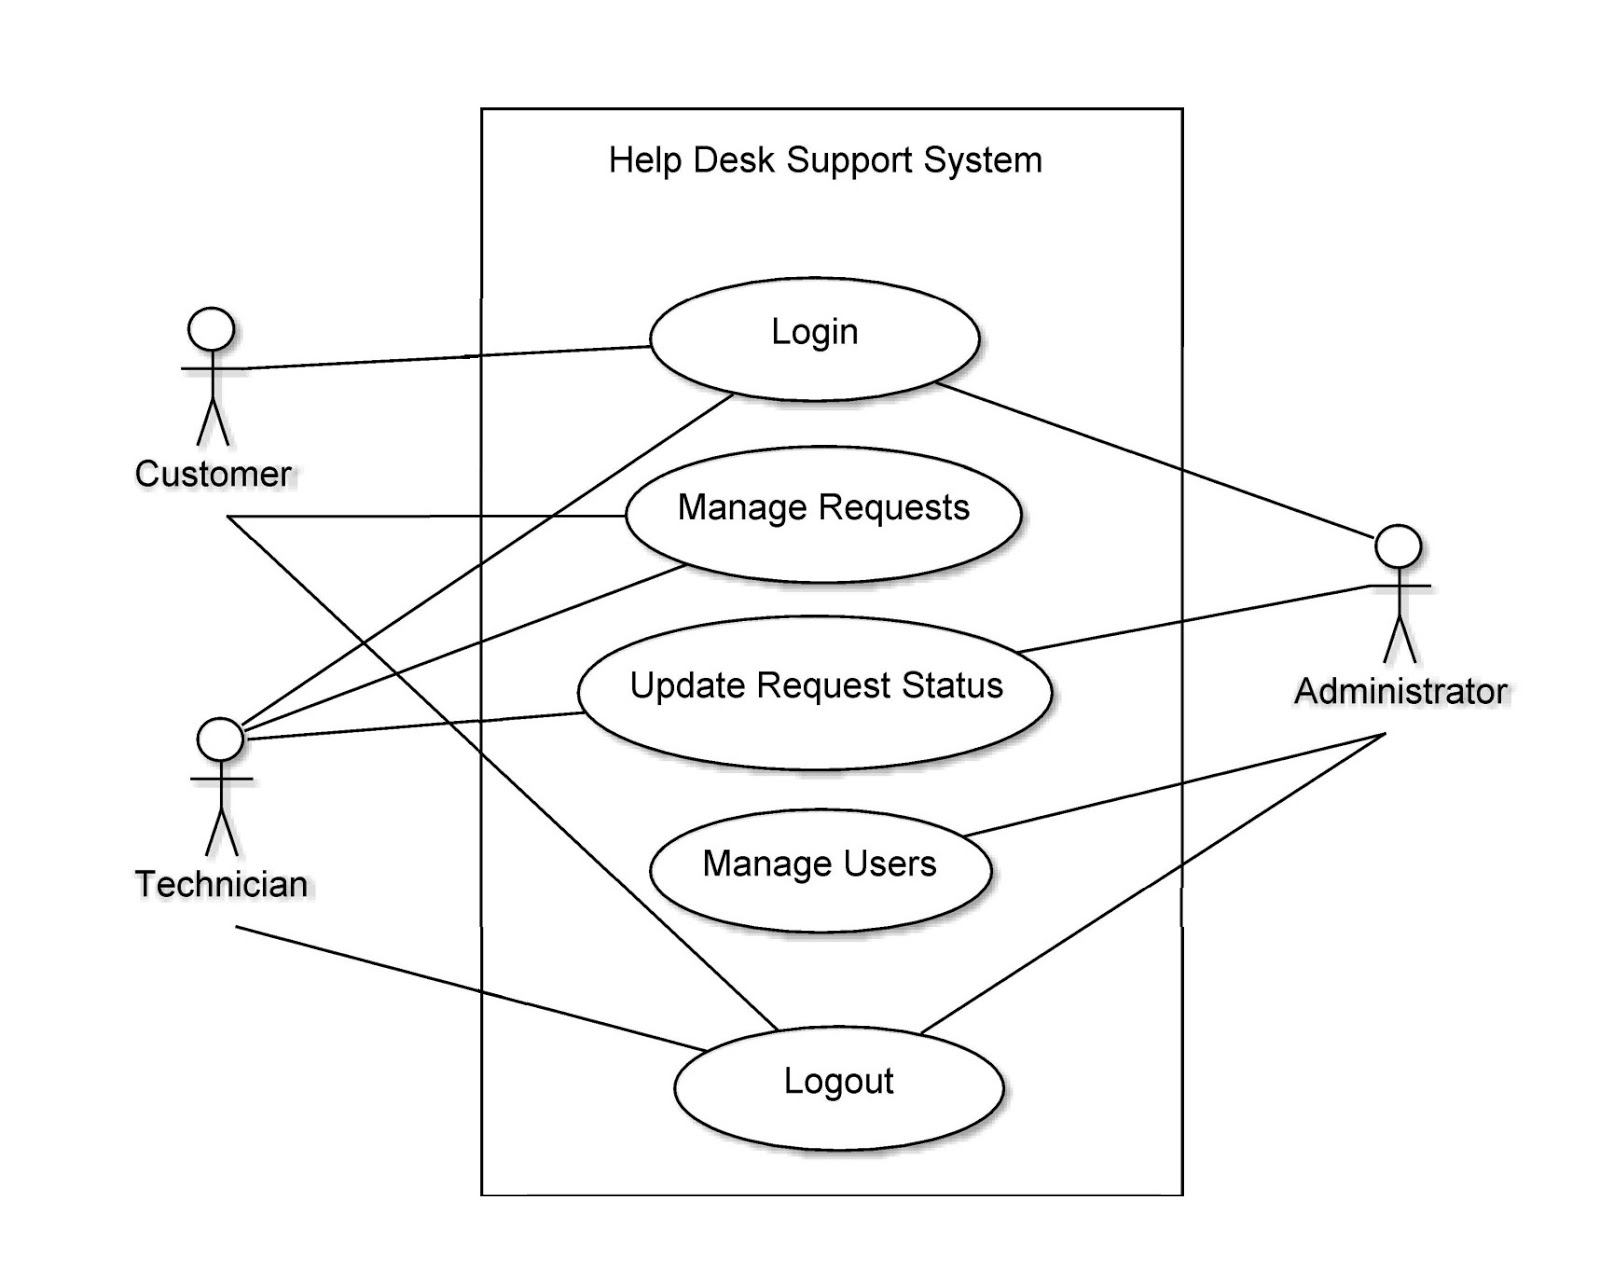 Computer science assignments help desk support system use case diagram use case diagram ccuart